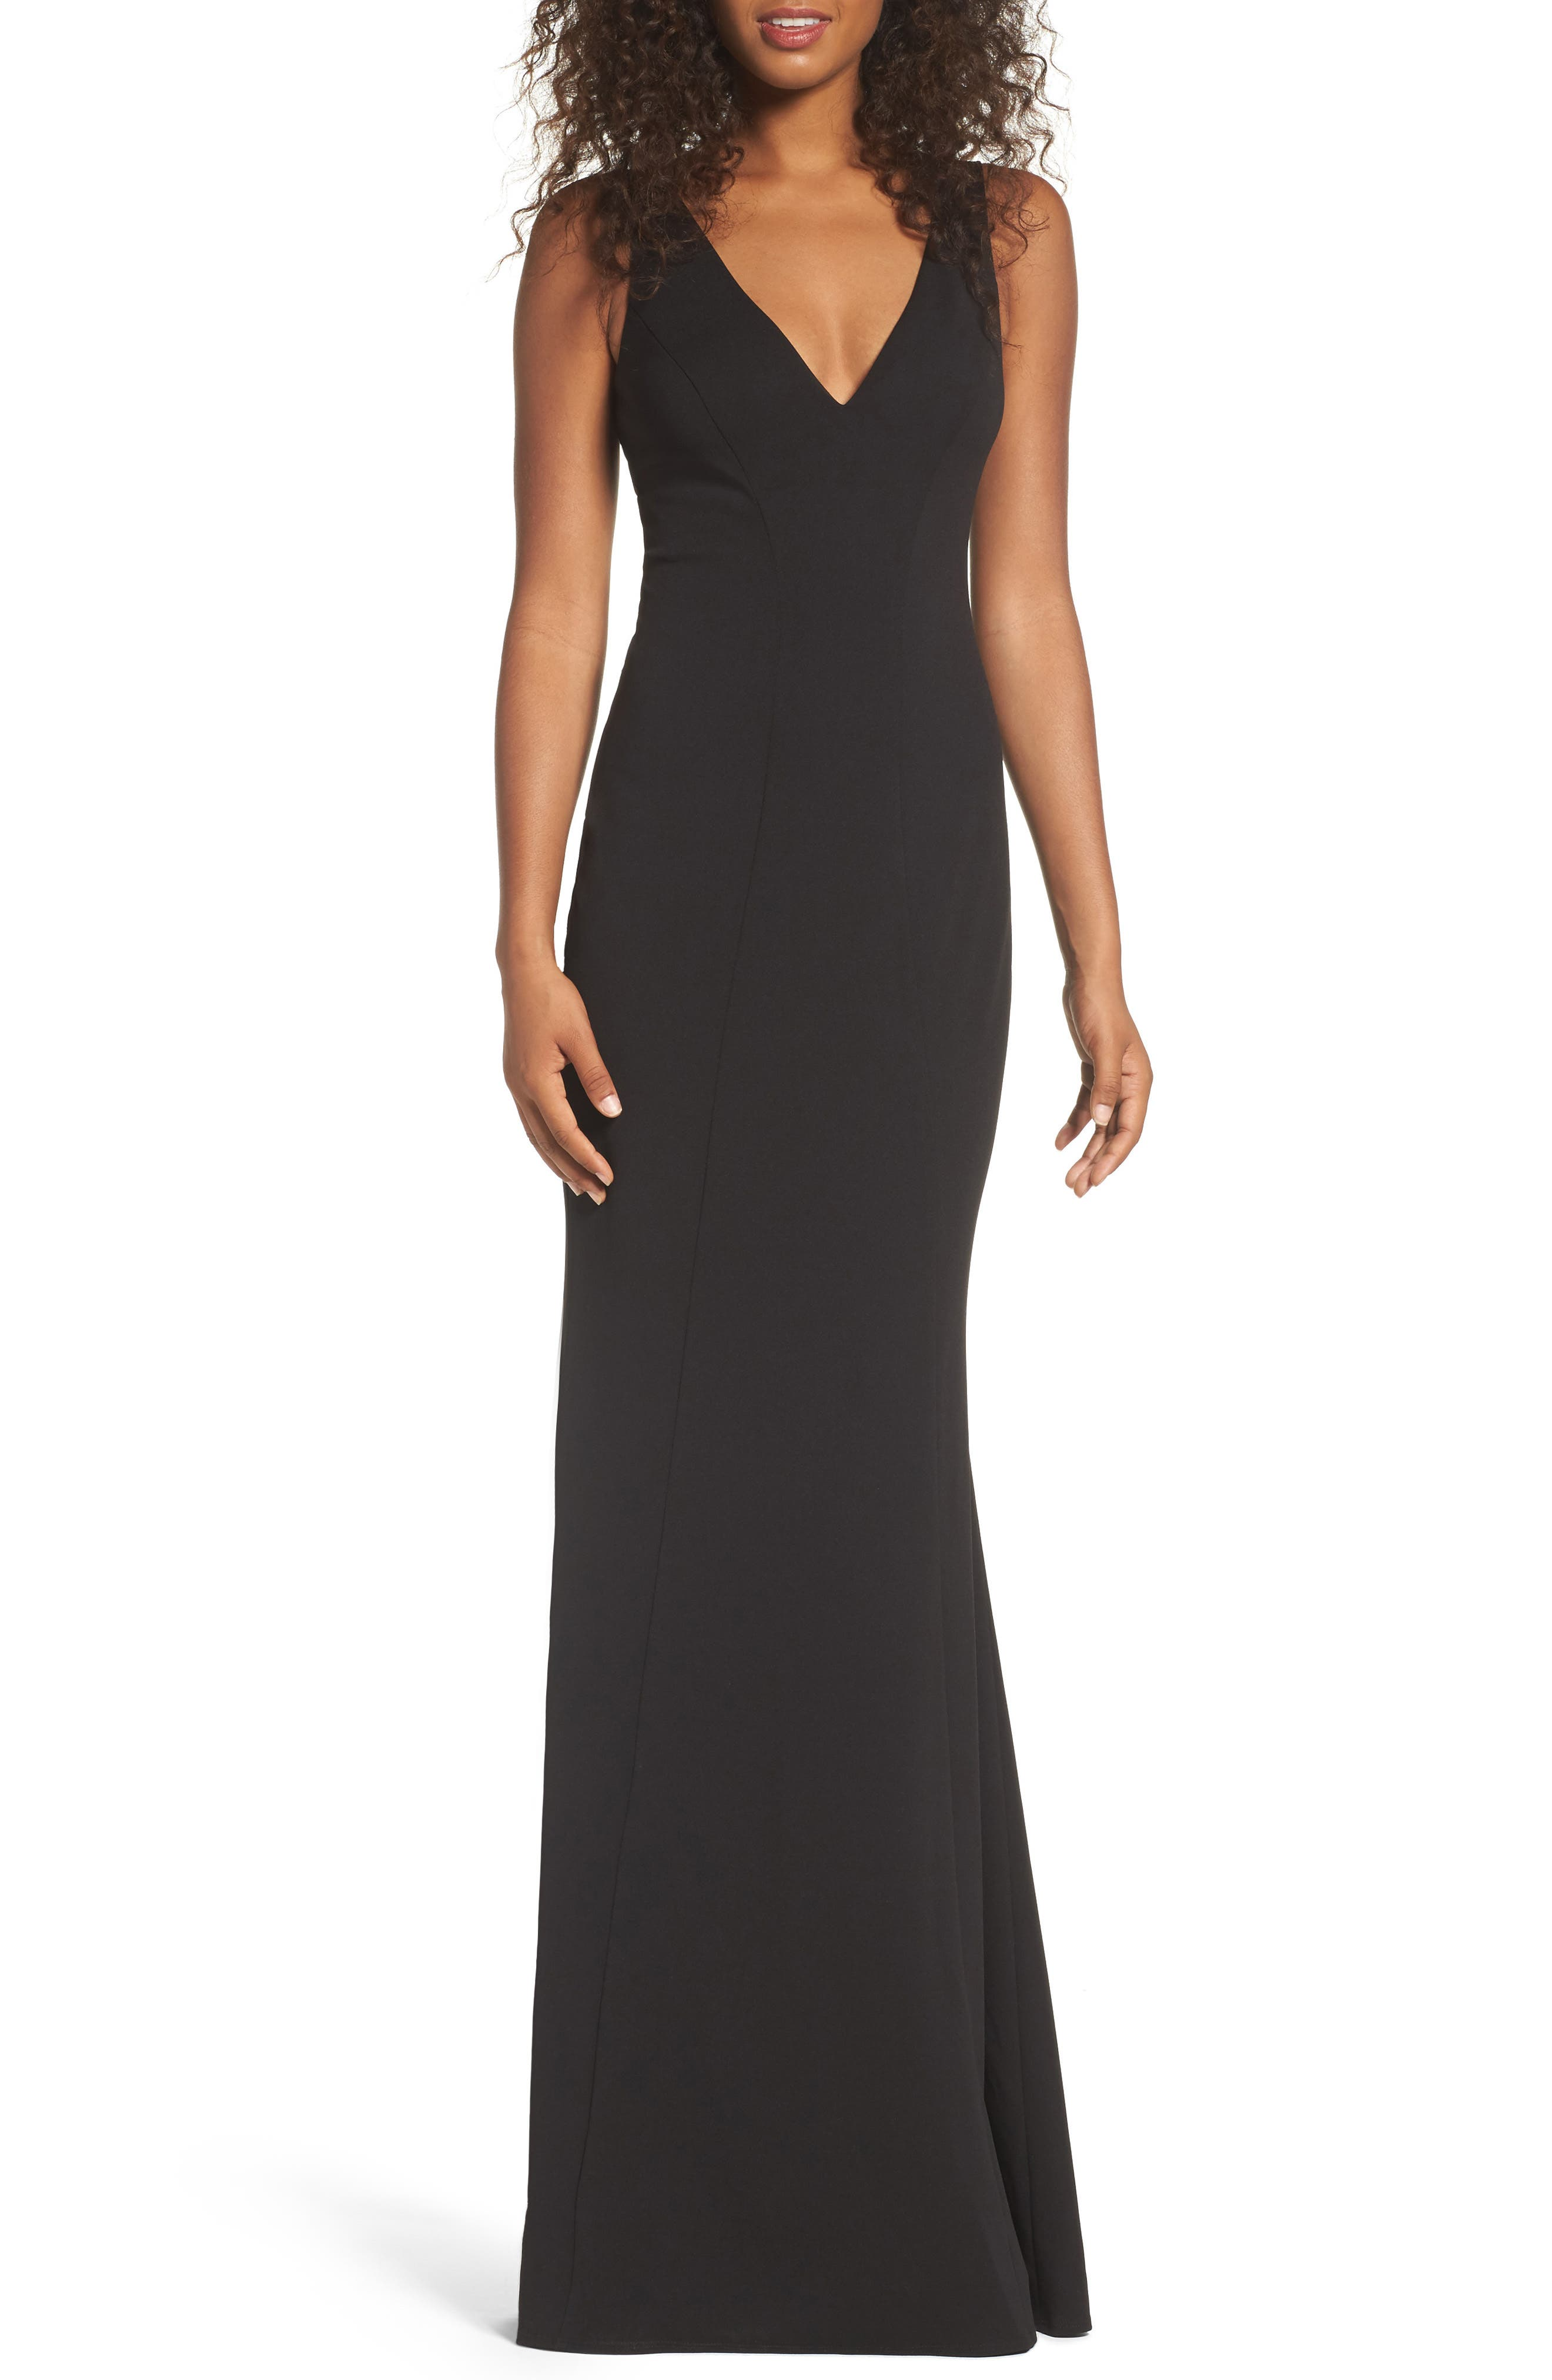 KATIE MAY,                             Mischka V-Neck Crepe Gown,                             Main thumbnail 1, color,                             BLACK